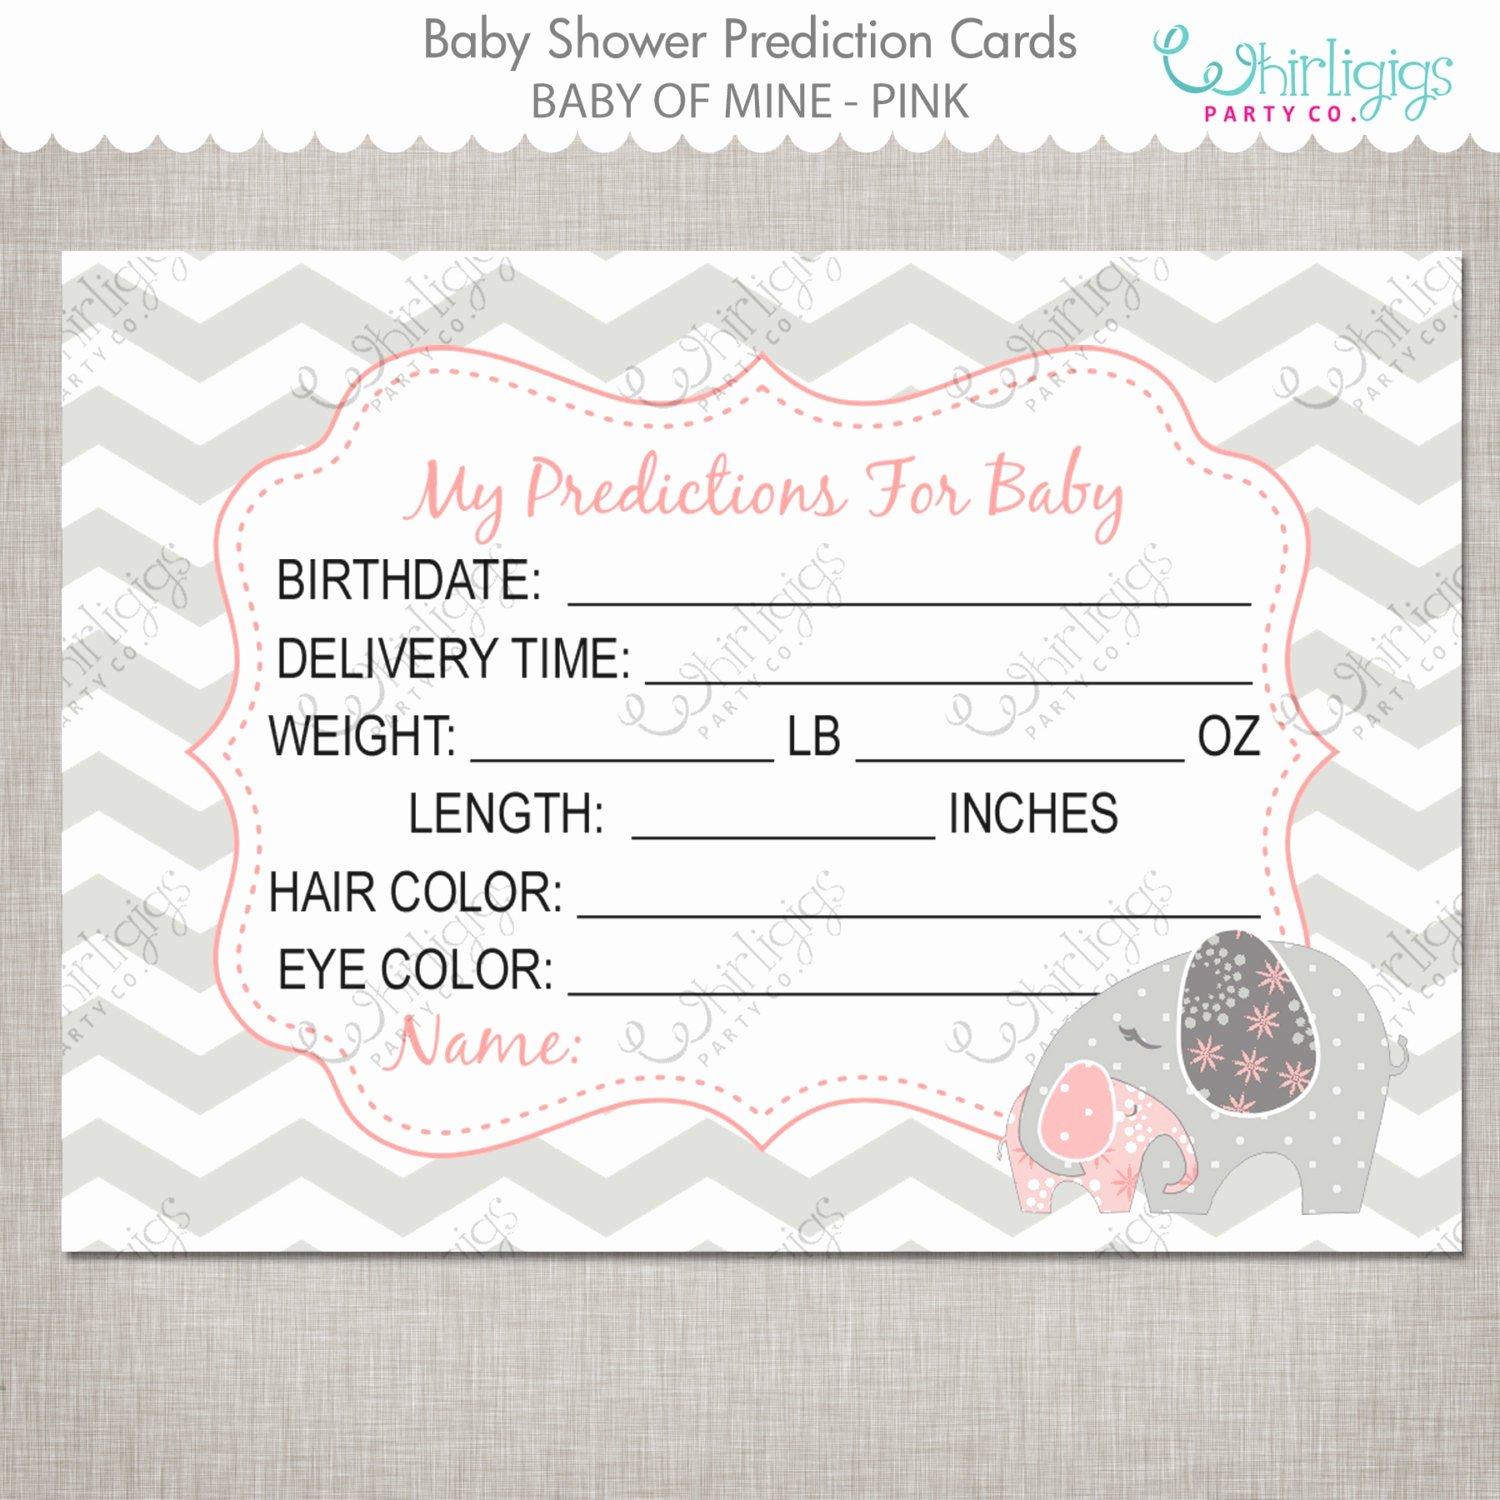 Printable Baby Shower Cards Elegant Predictions for Baby Printable Baby Shower Cards Baby